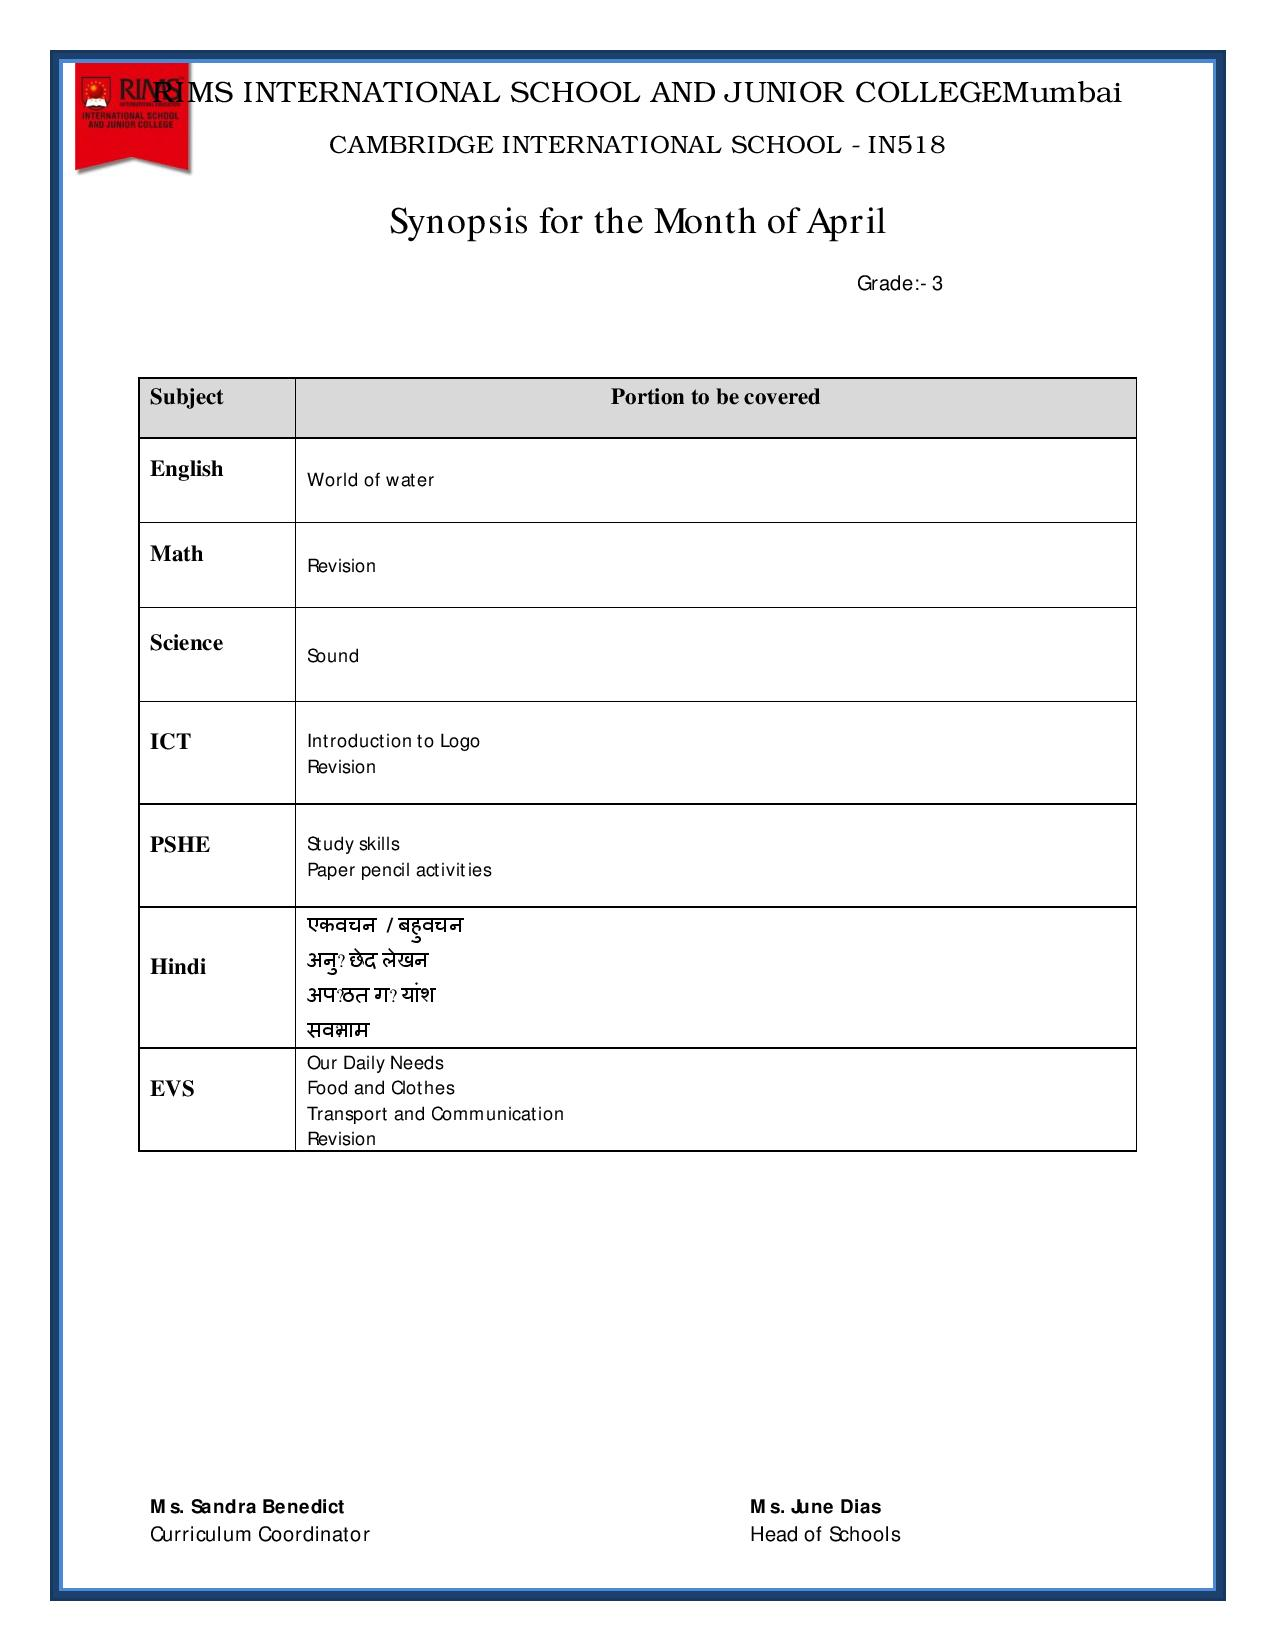 Synopsis for the Month of April - Grade 3